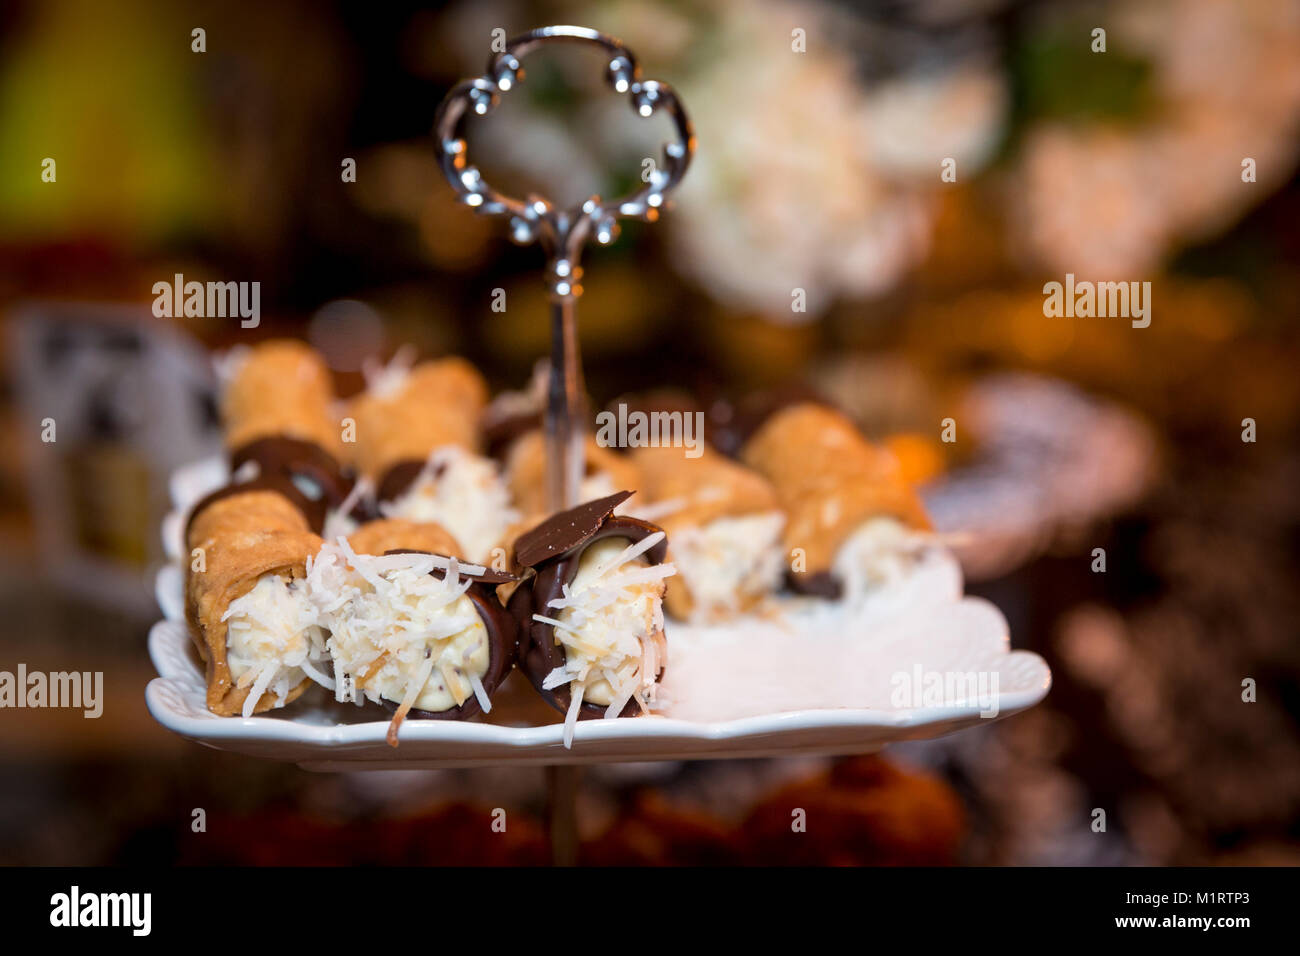 Cannoli at the Desert station at a dinner party buffet, Naples, Florida, USA - Stock Image